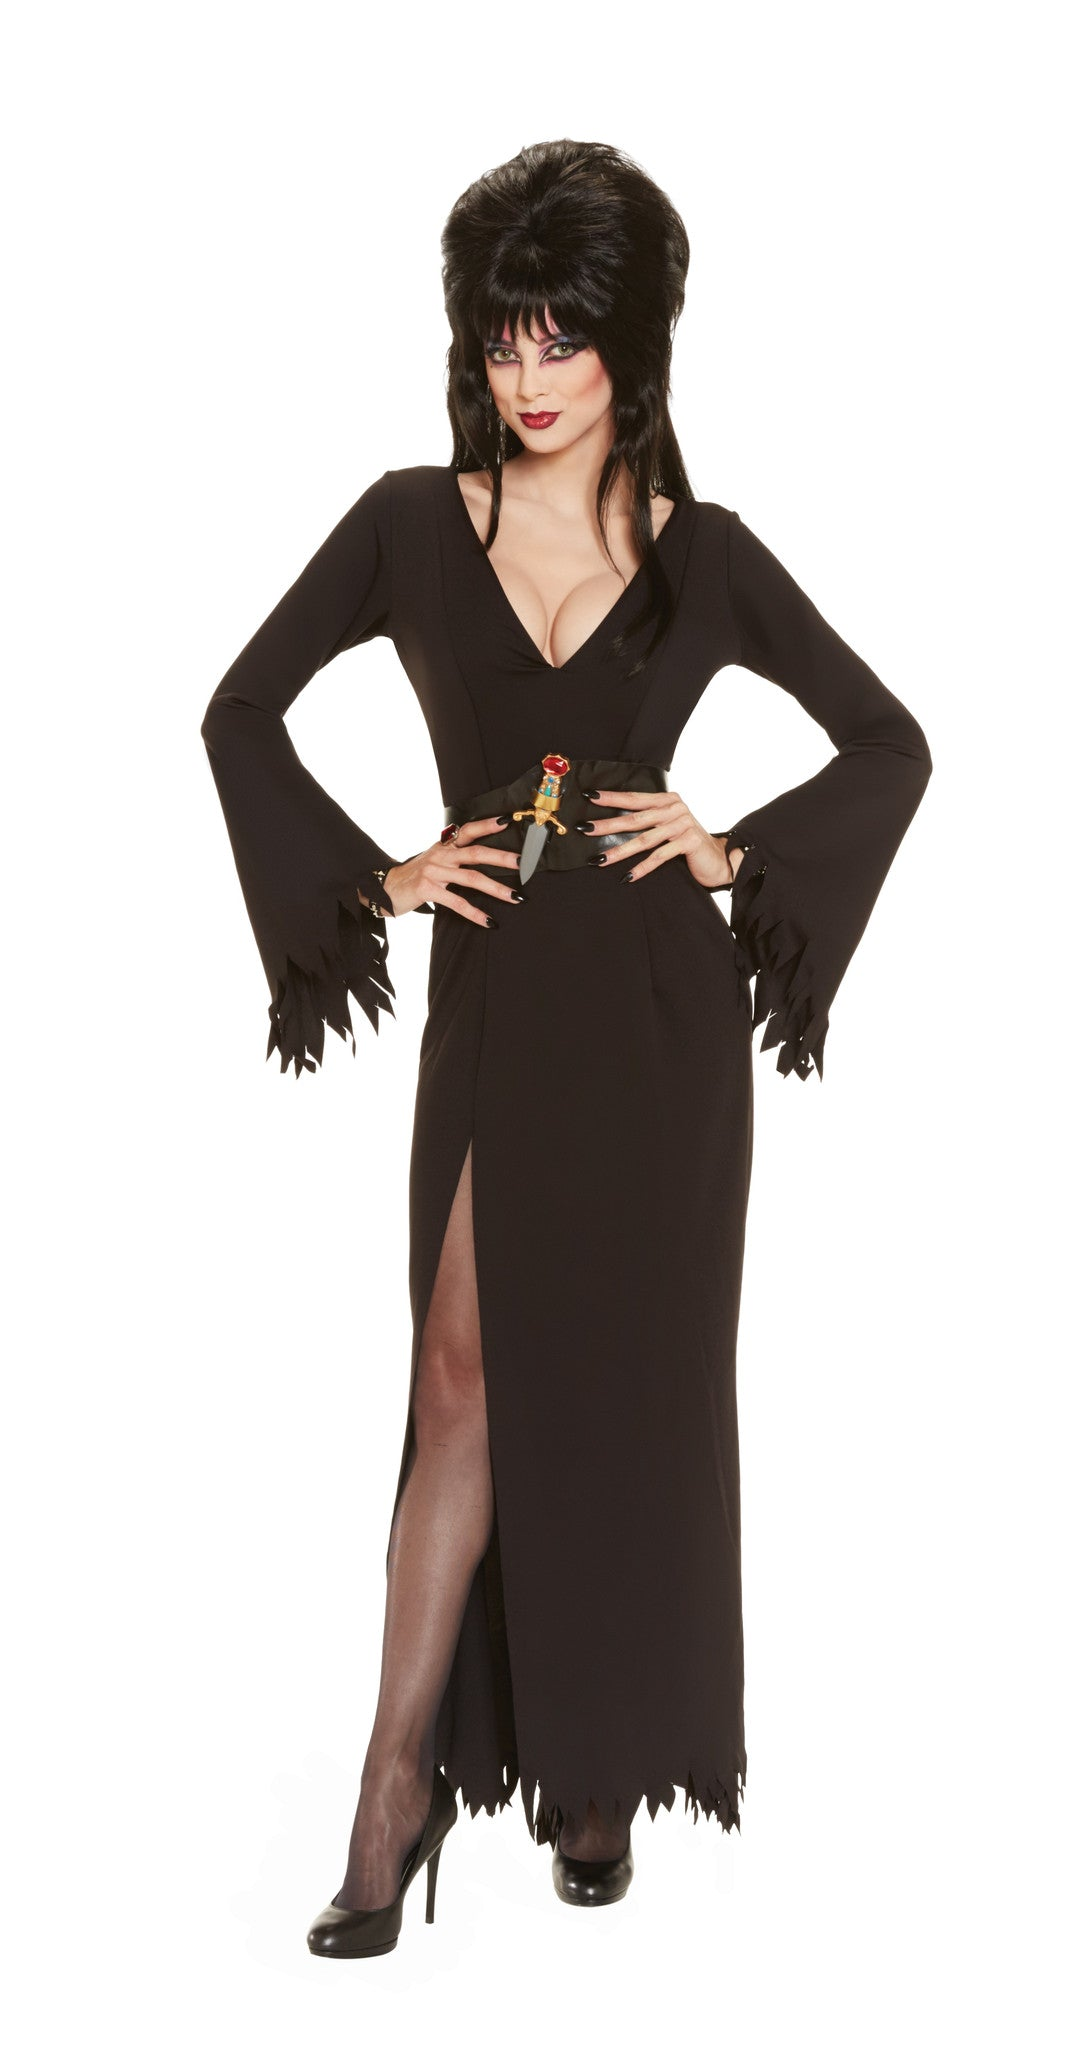 Womens Elvira Costume - Grand Heritage Collection